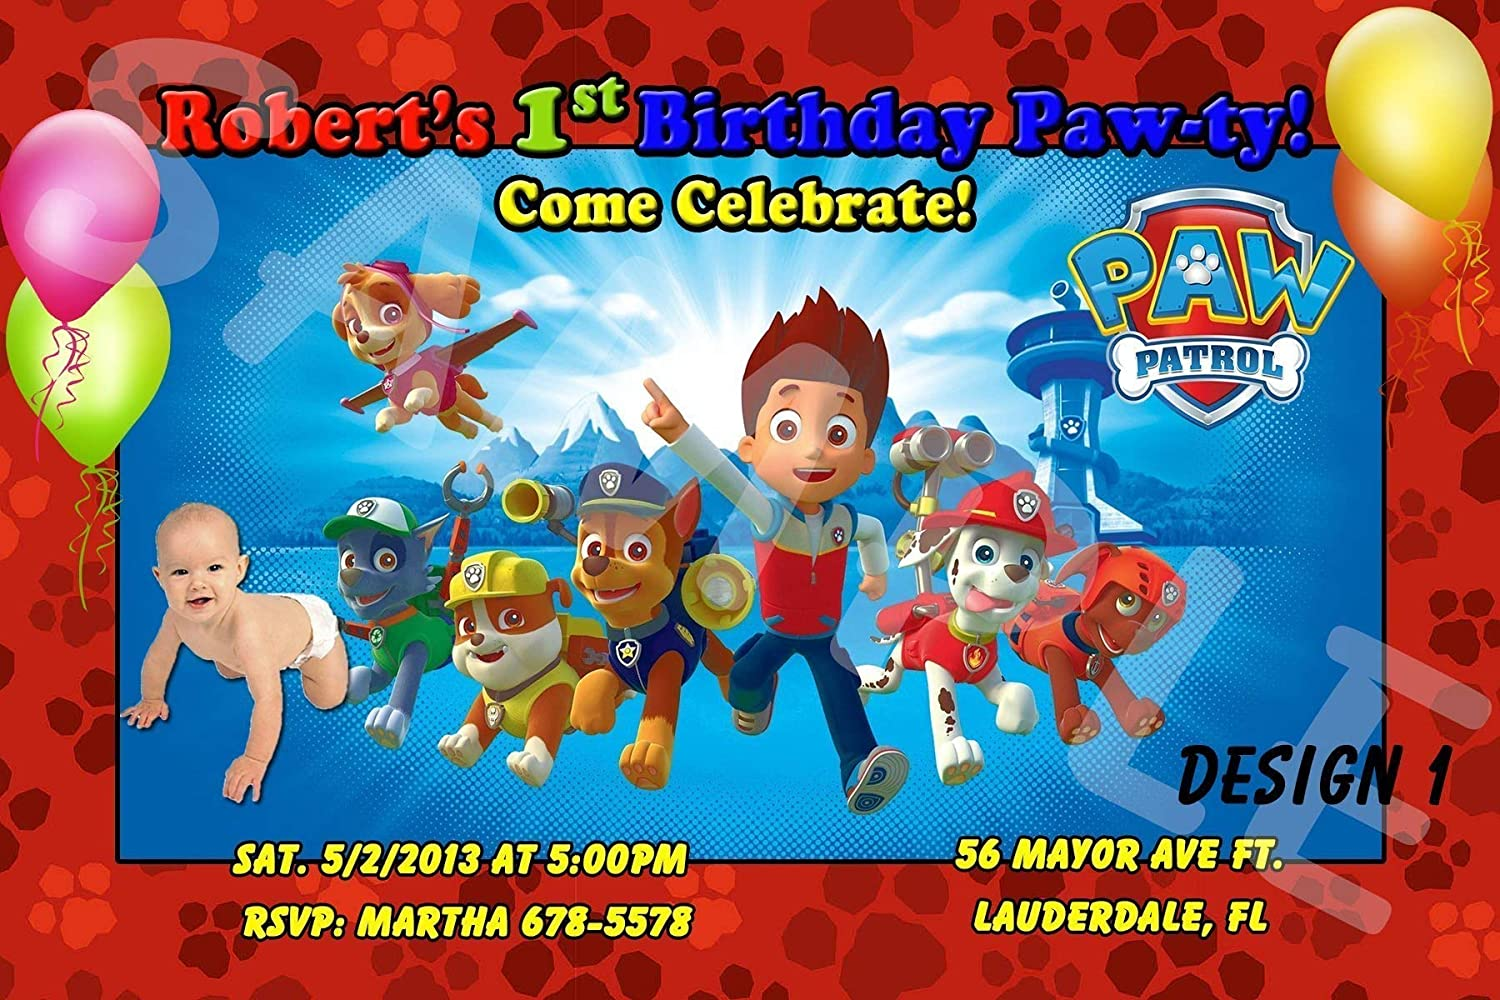 Paw Patrol Personalized Birthday Invitations More Designs Inside